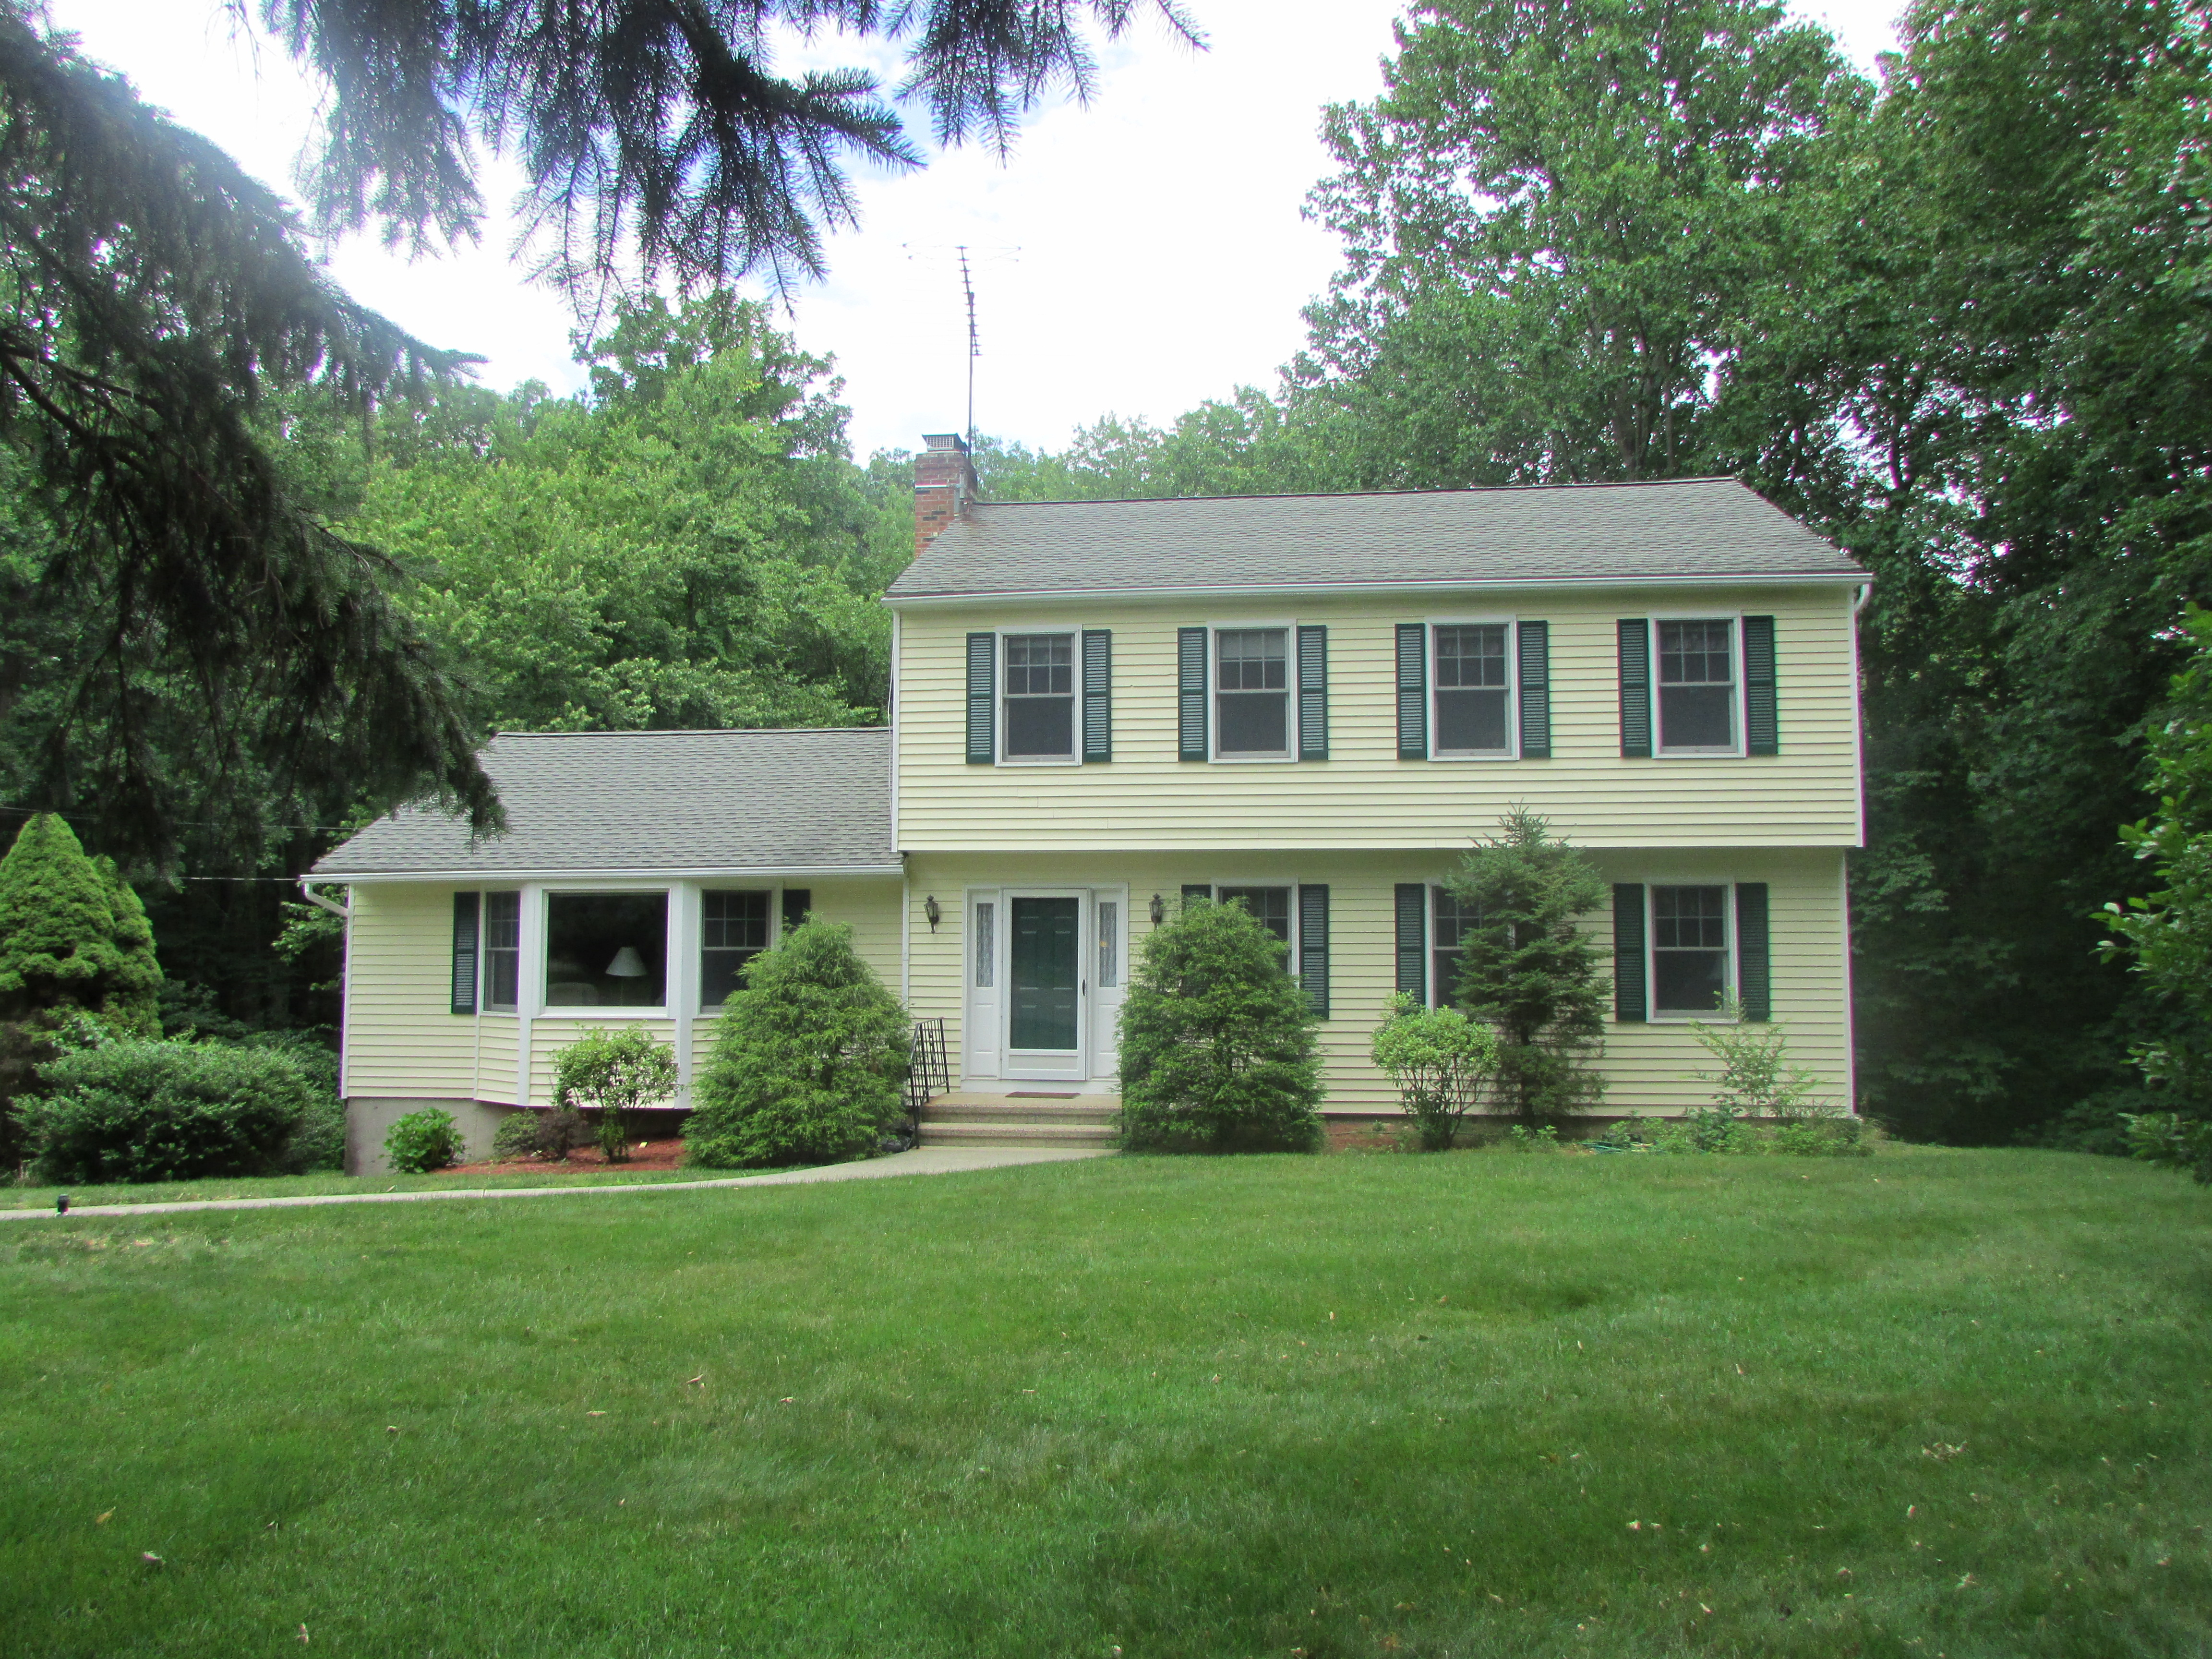 Single Family Home for Sale at Move in Condition 27 Rouleau Lane Shelton, Connecticut, 06484 United States